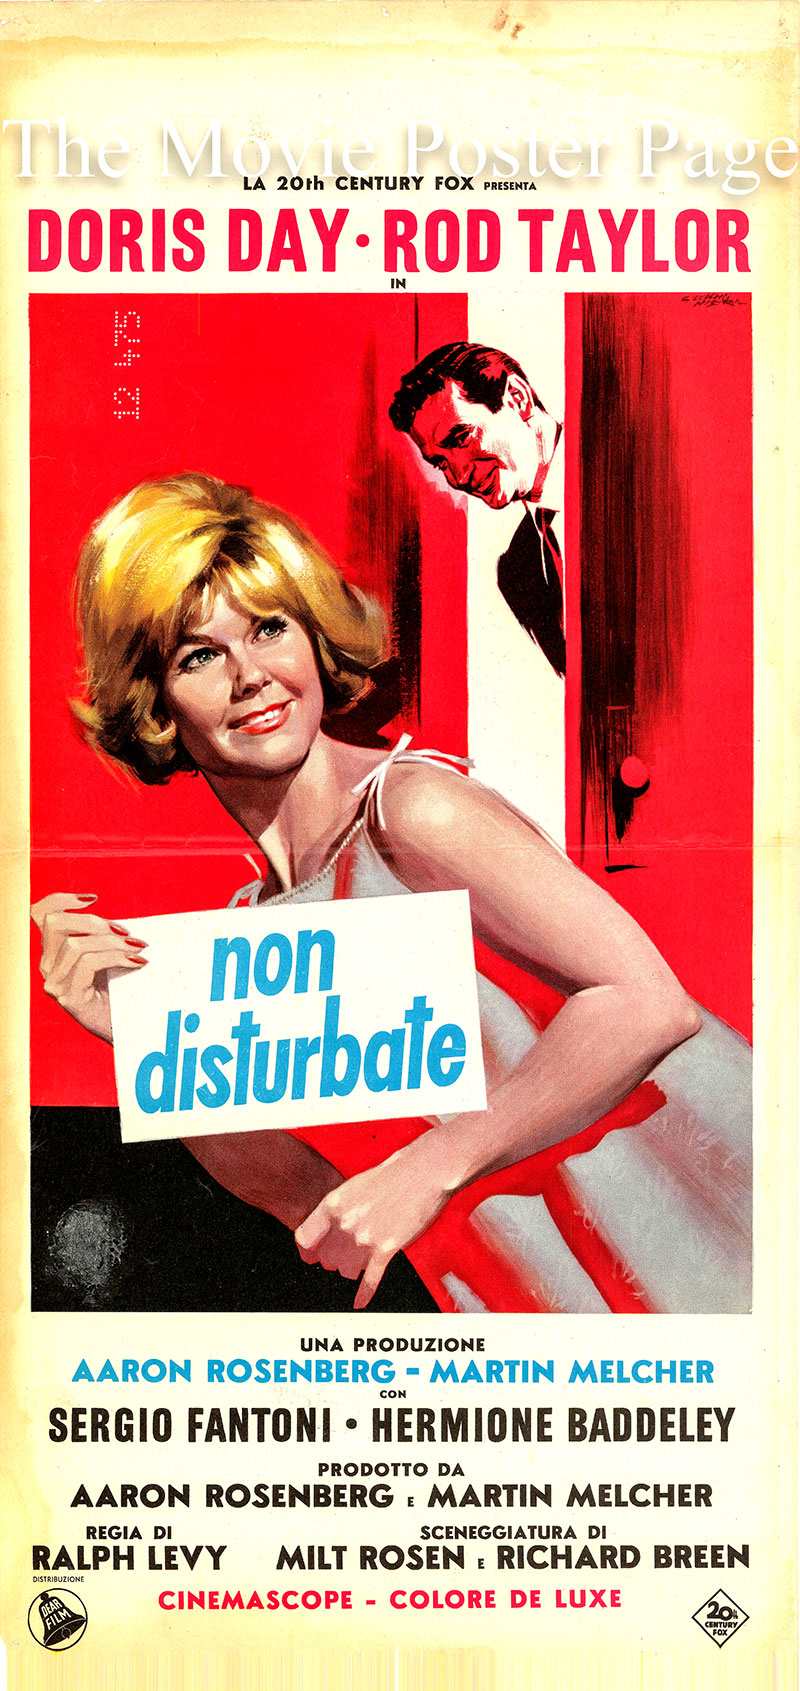 Pictured is an Italian locandina promotional poster for the 1965 Ralph Levy film Do Not Disturb starring Doris Day as Janet Harper.